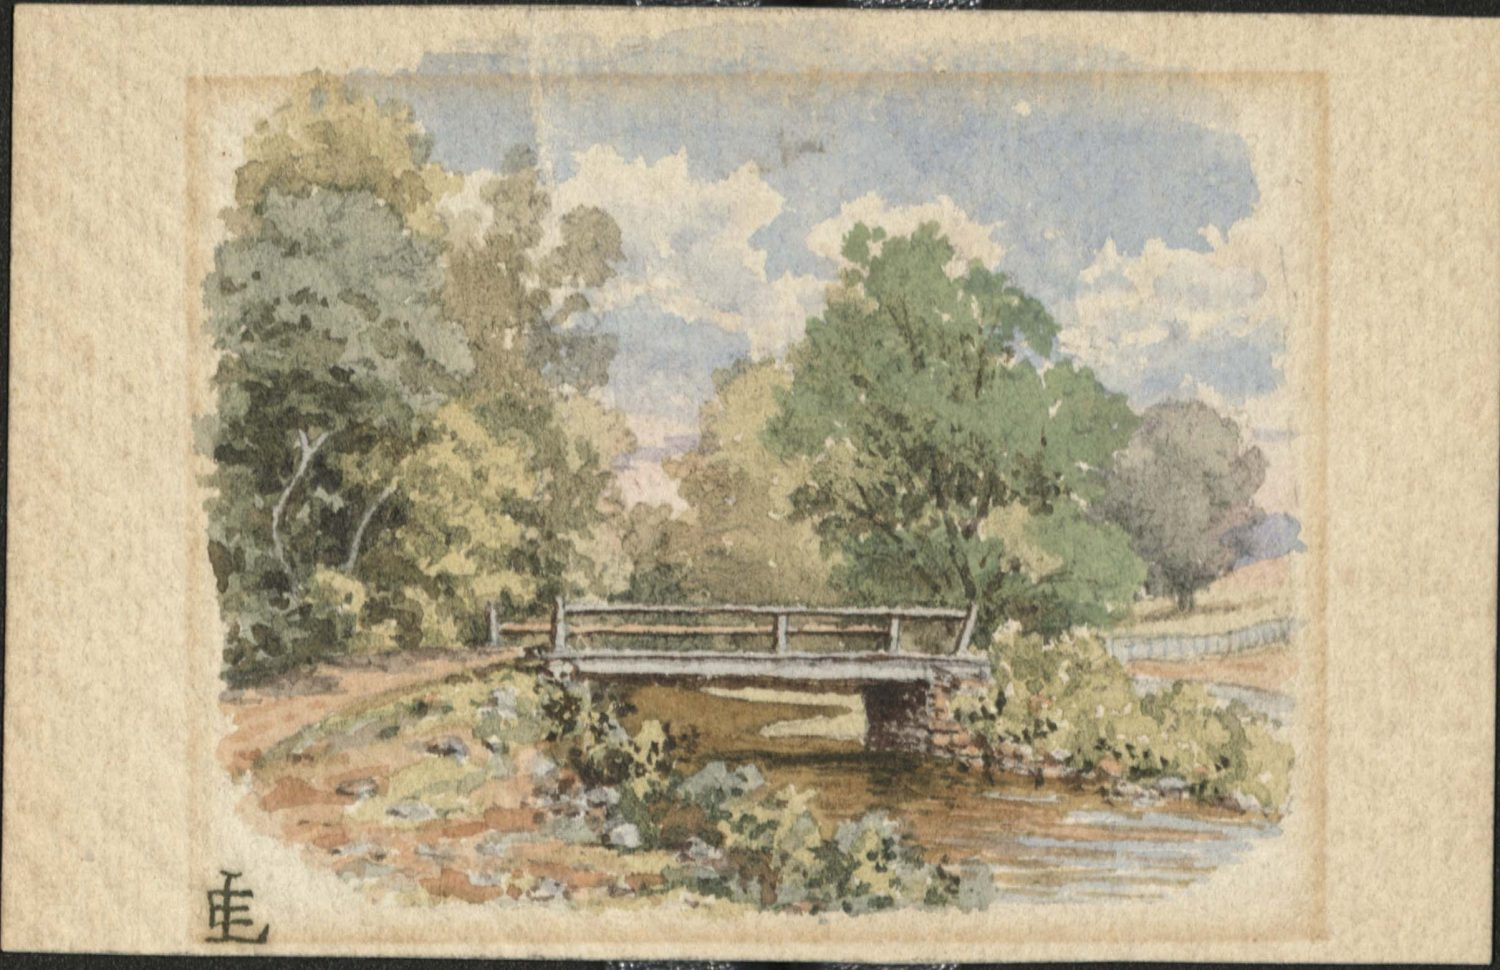 This image shows a landscape watercolor painting featuring a small bridge over a stream.